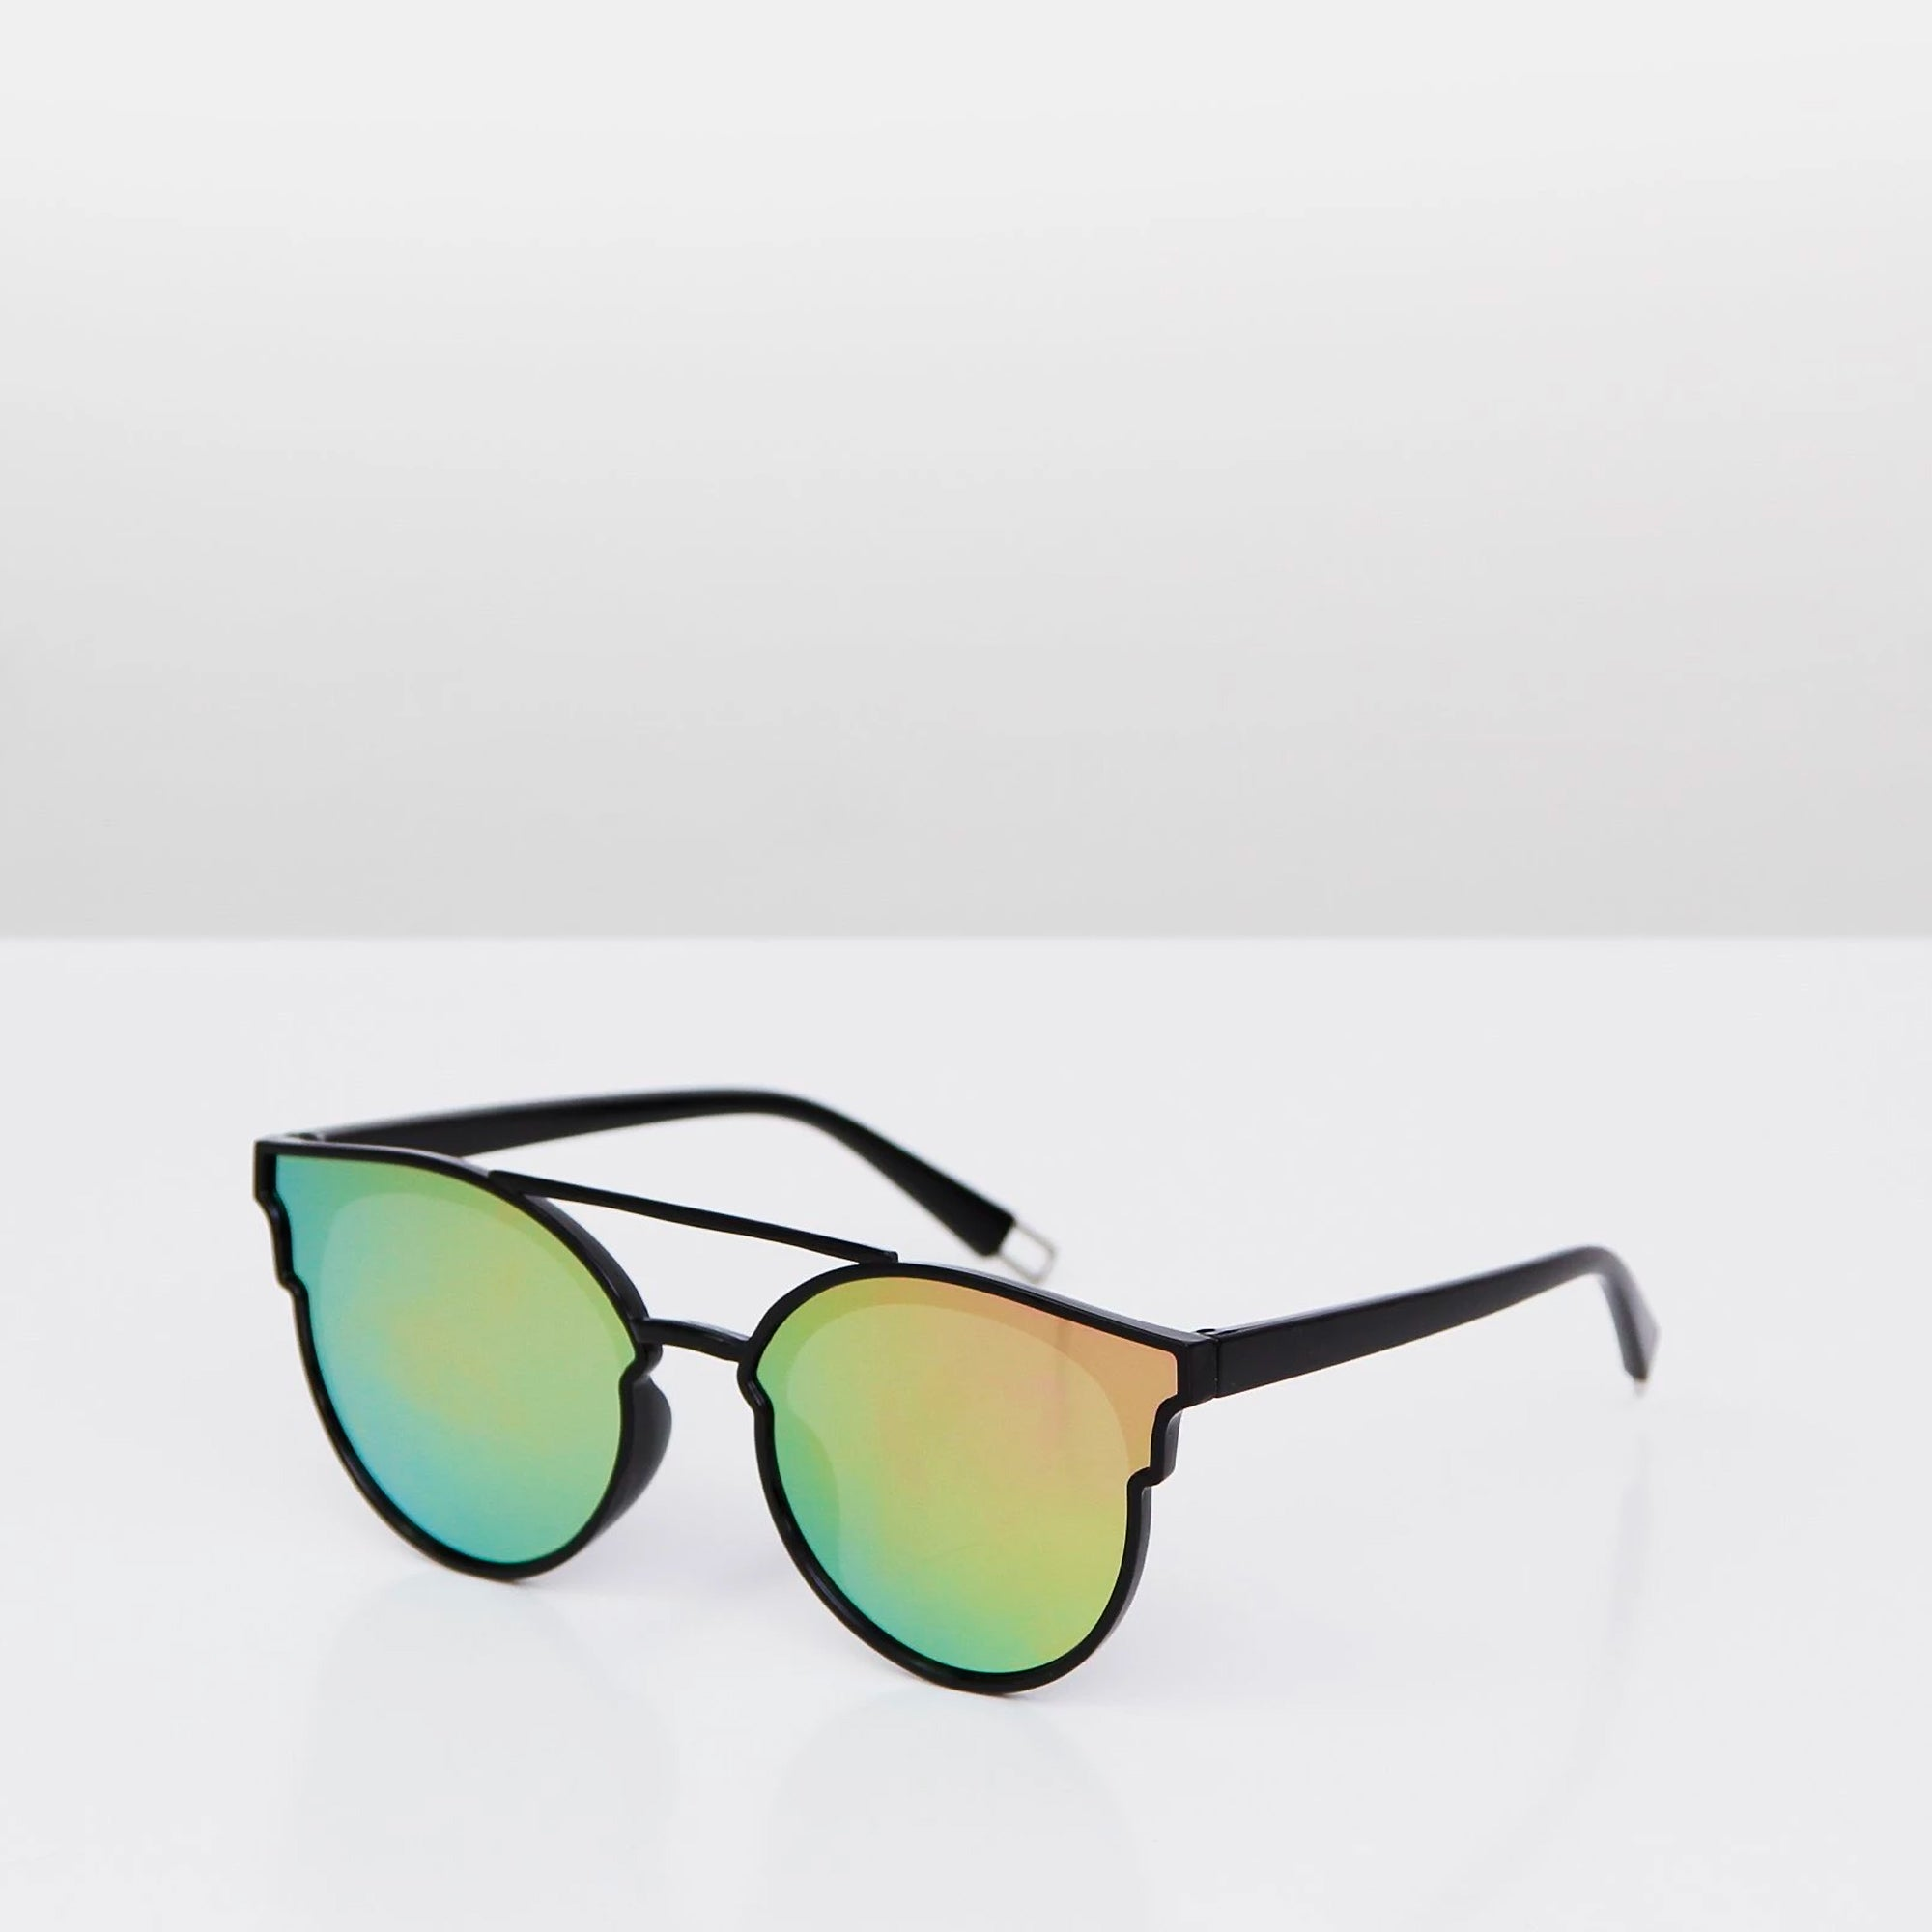 Hunter-wild-street-sunglasses-square-.jpg